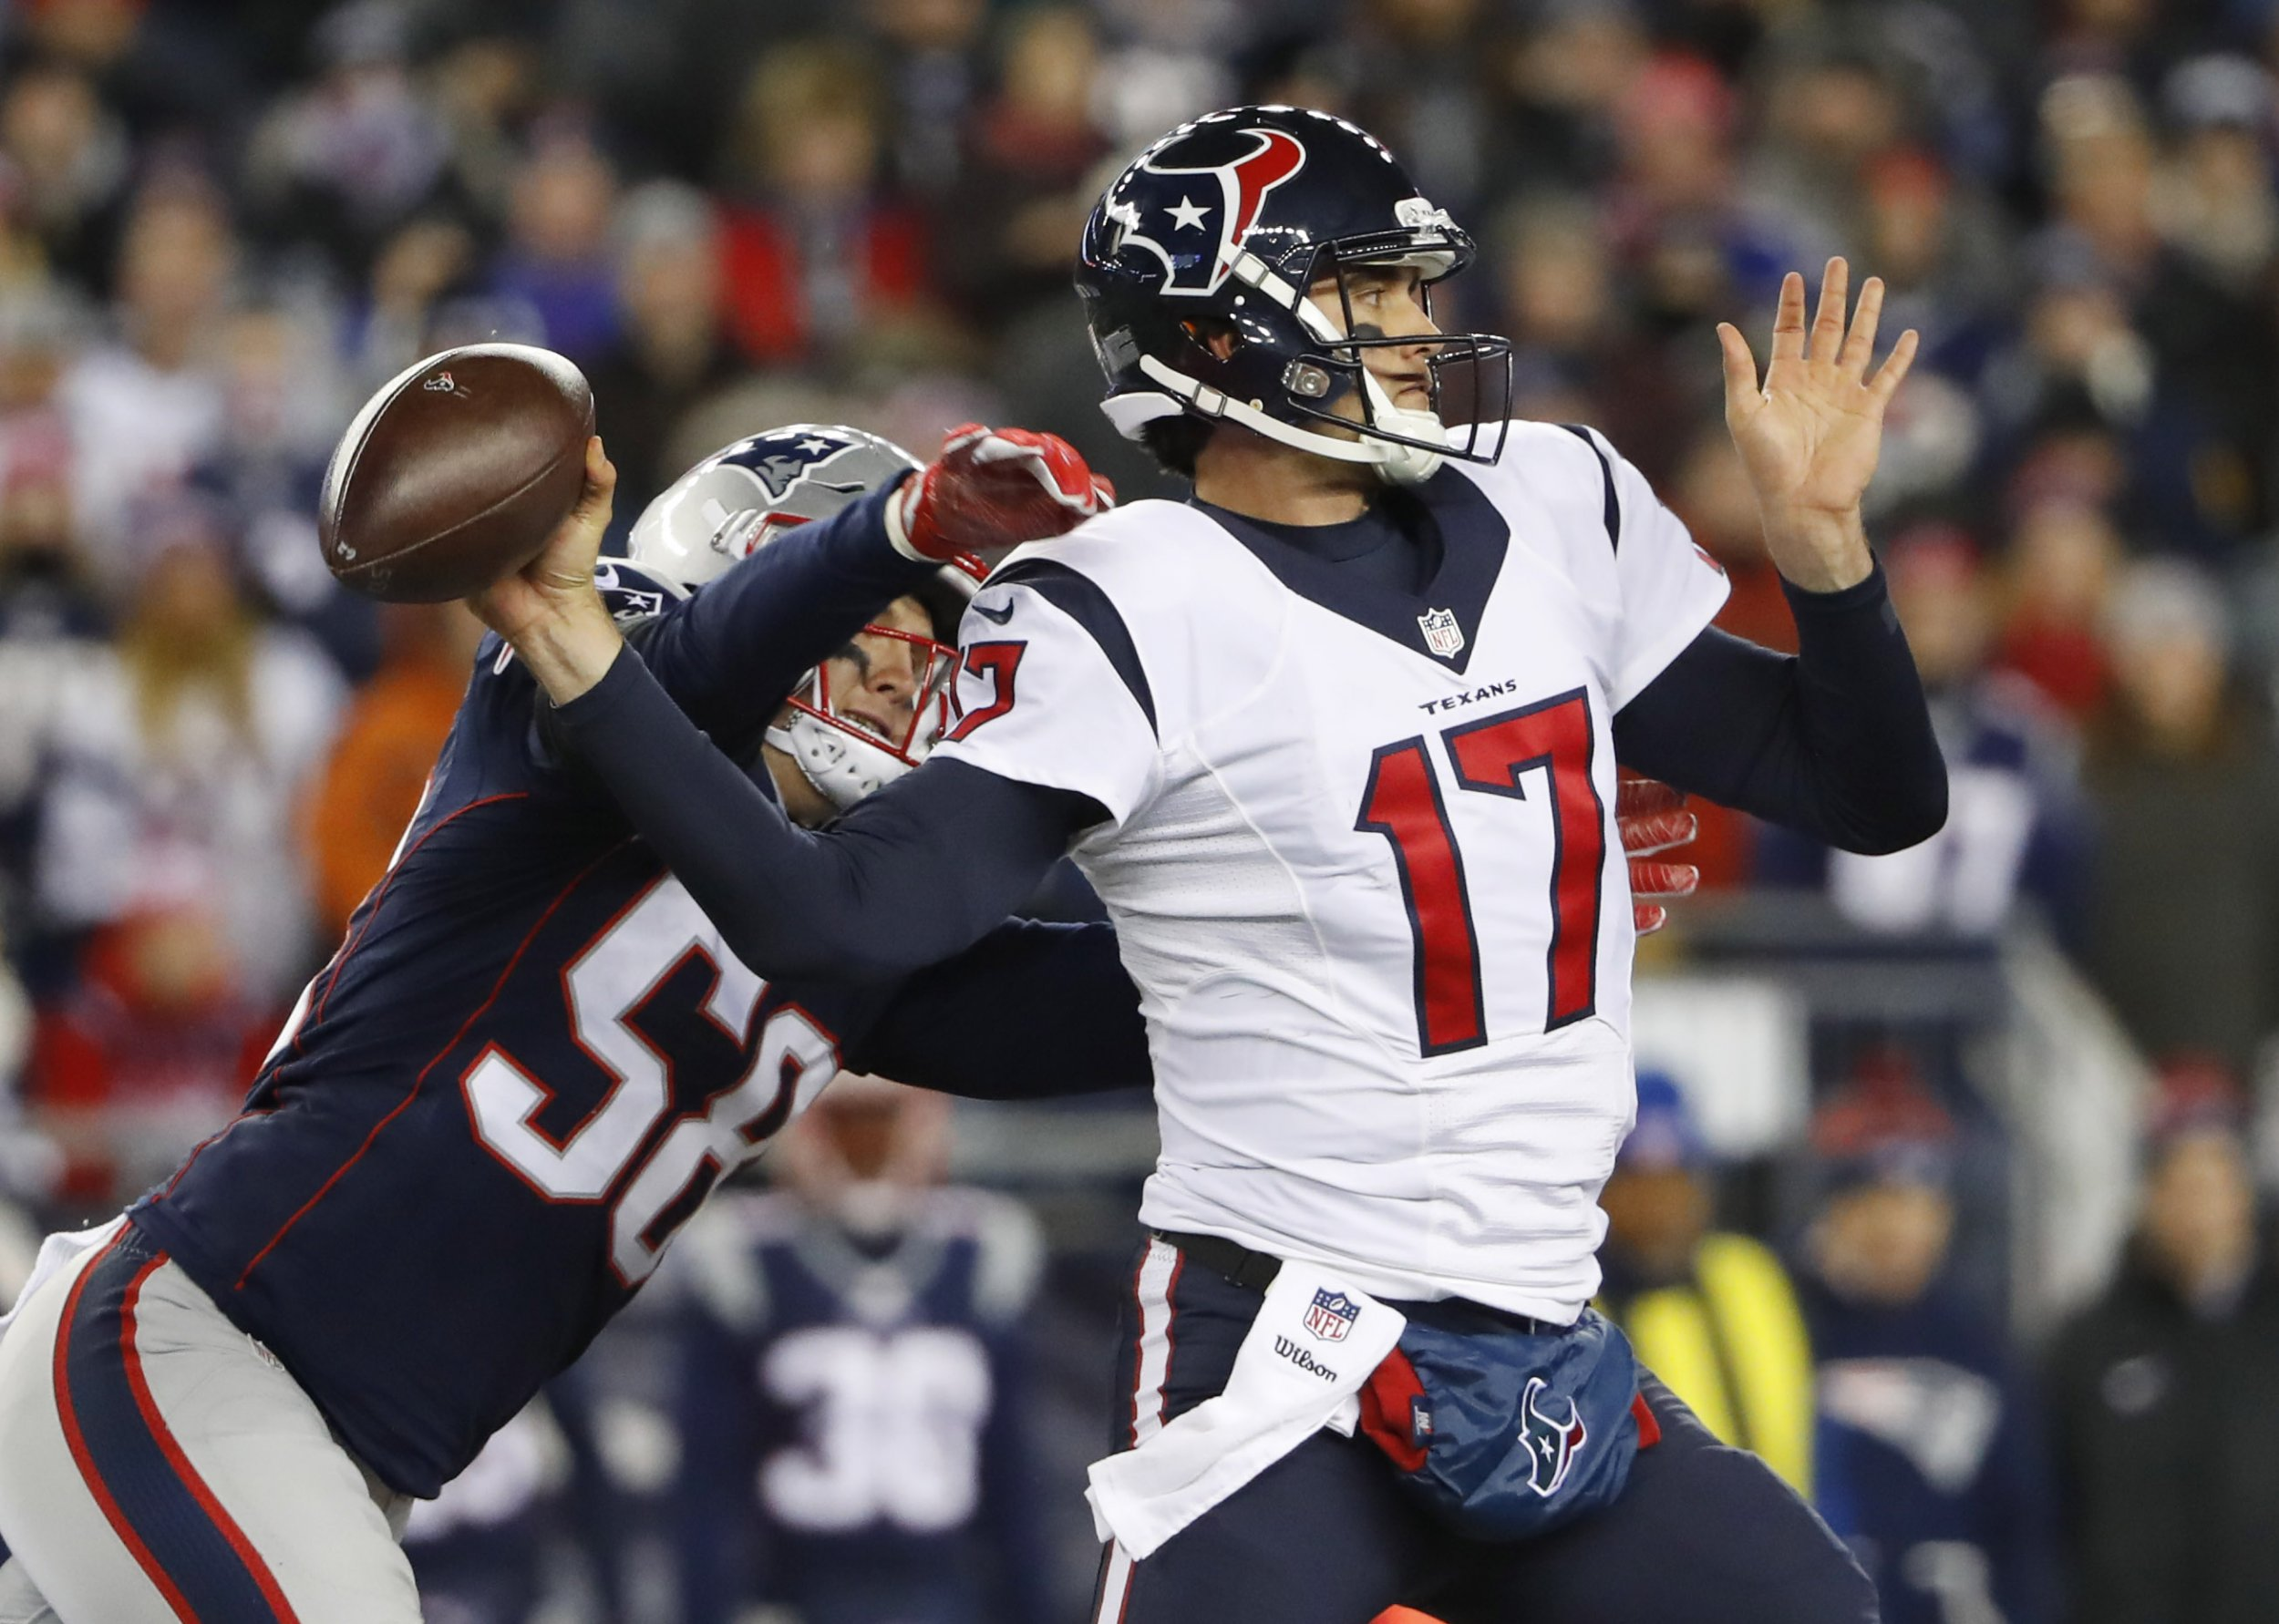 99ca16e5d Brock Ostweiler was intercepted three times in the Houston Texans'  divisional playoff loss to the New England Patriots. USA TODAY SPORTS